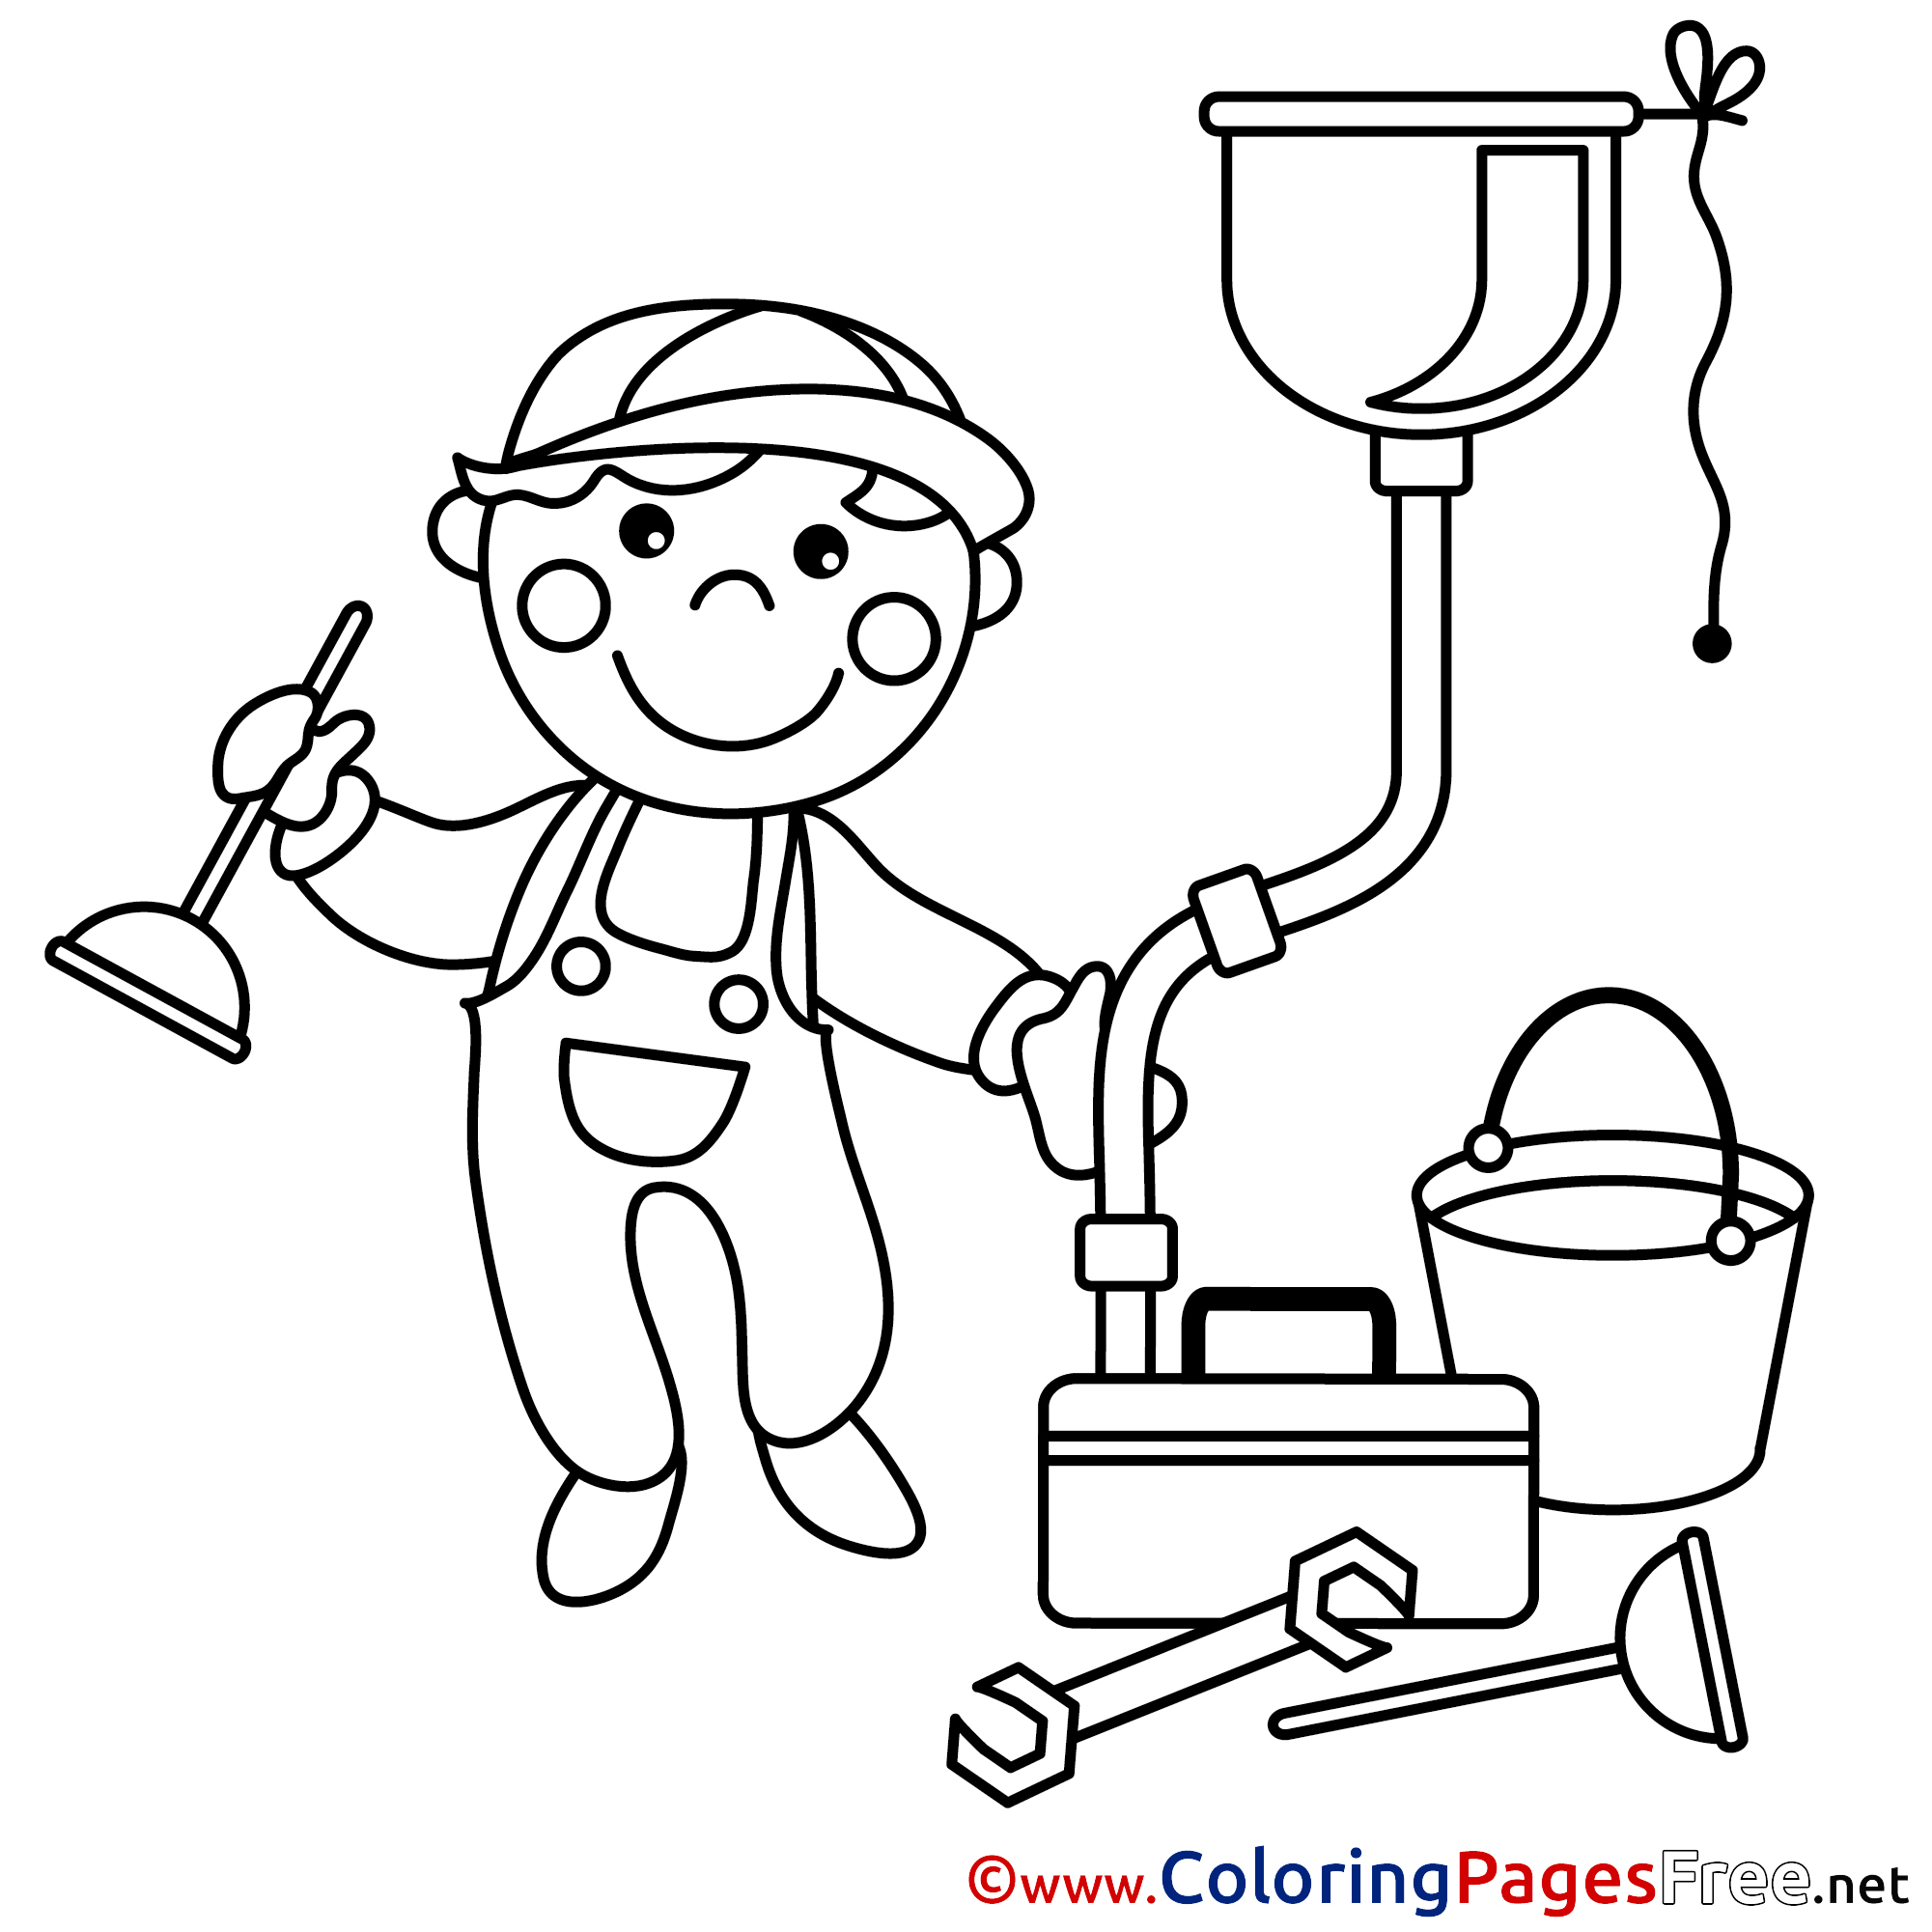 Plumber Colouring Sheet Download Free